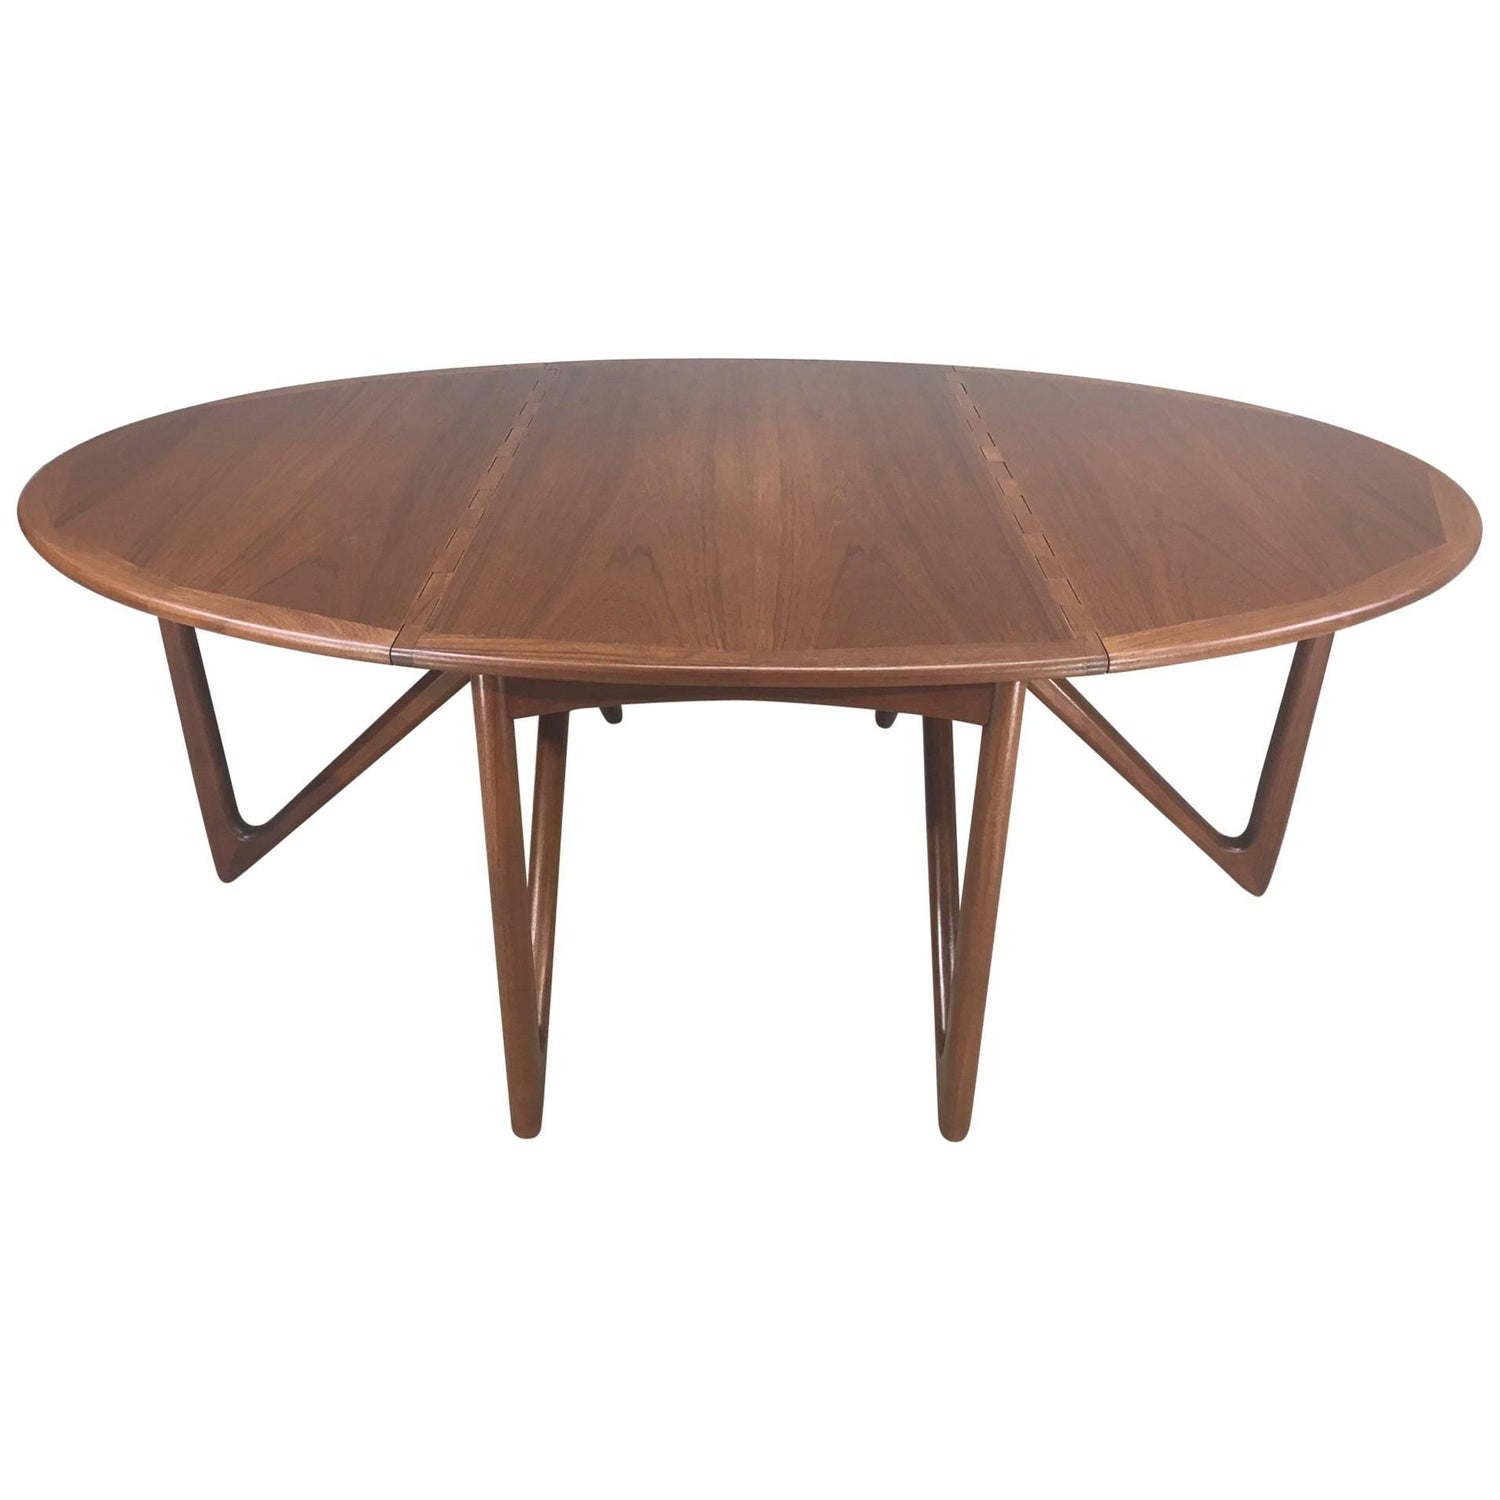 Scandinavian Modern Tables 1 954 For Sale at 1stdibs